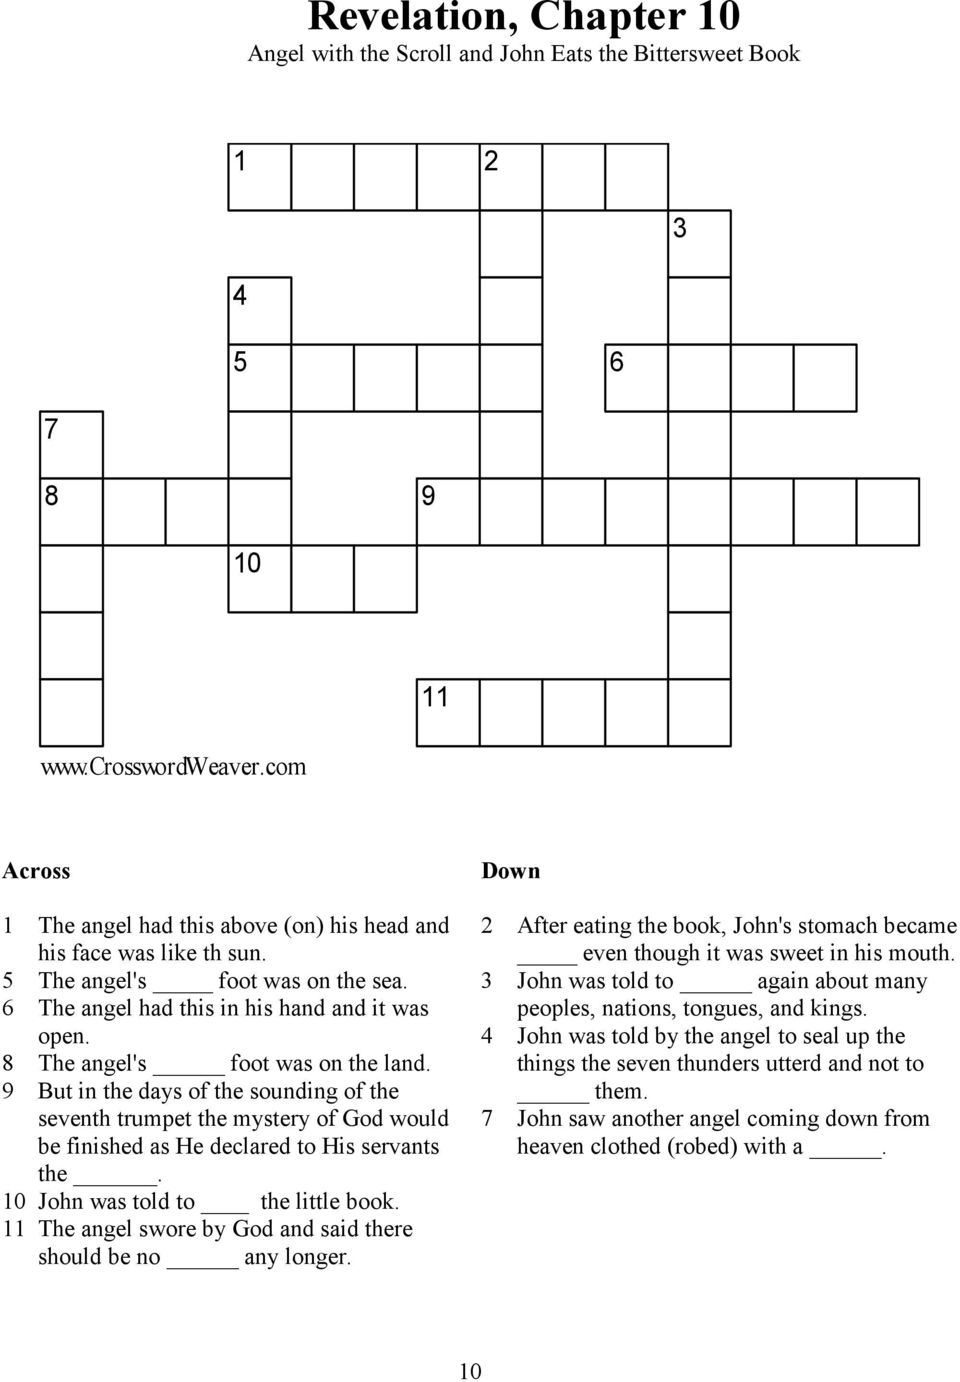 Crossword Puzzles The Book of Revelation - PDF